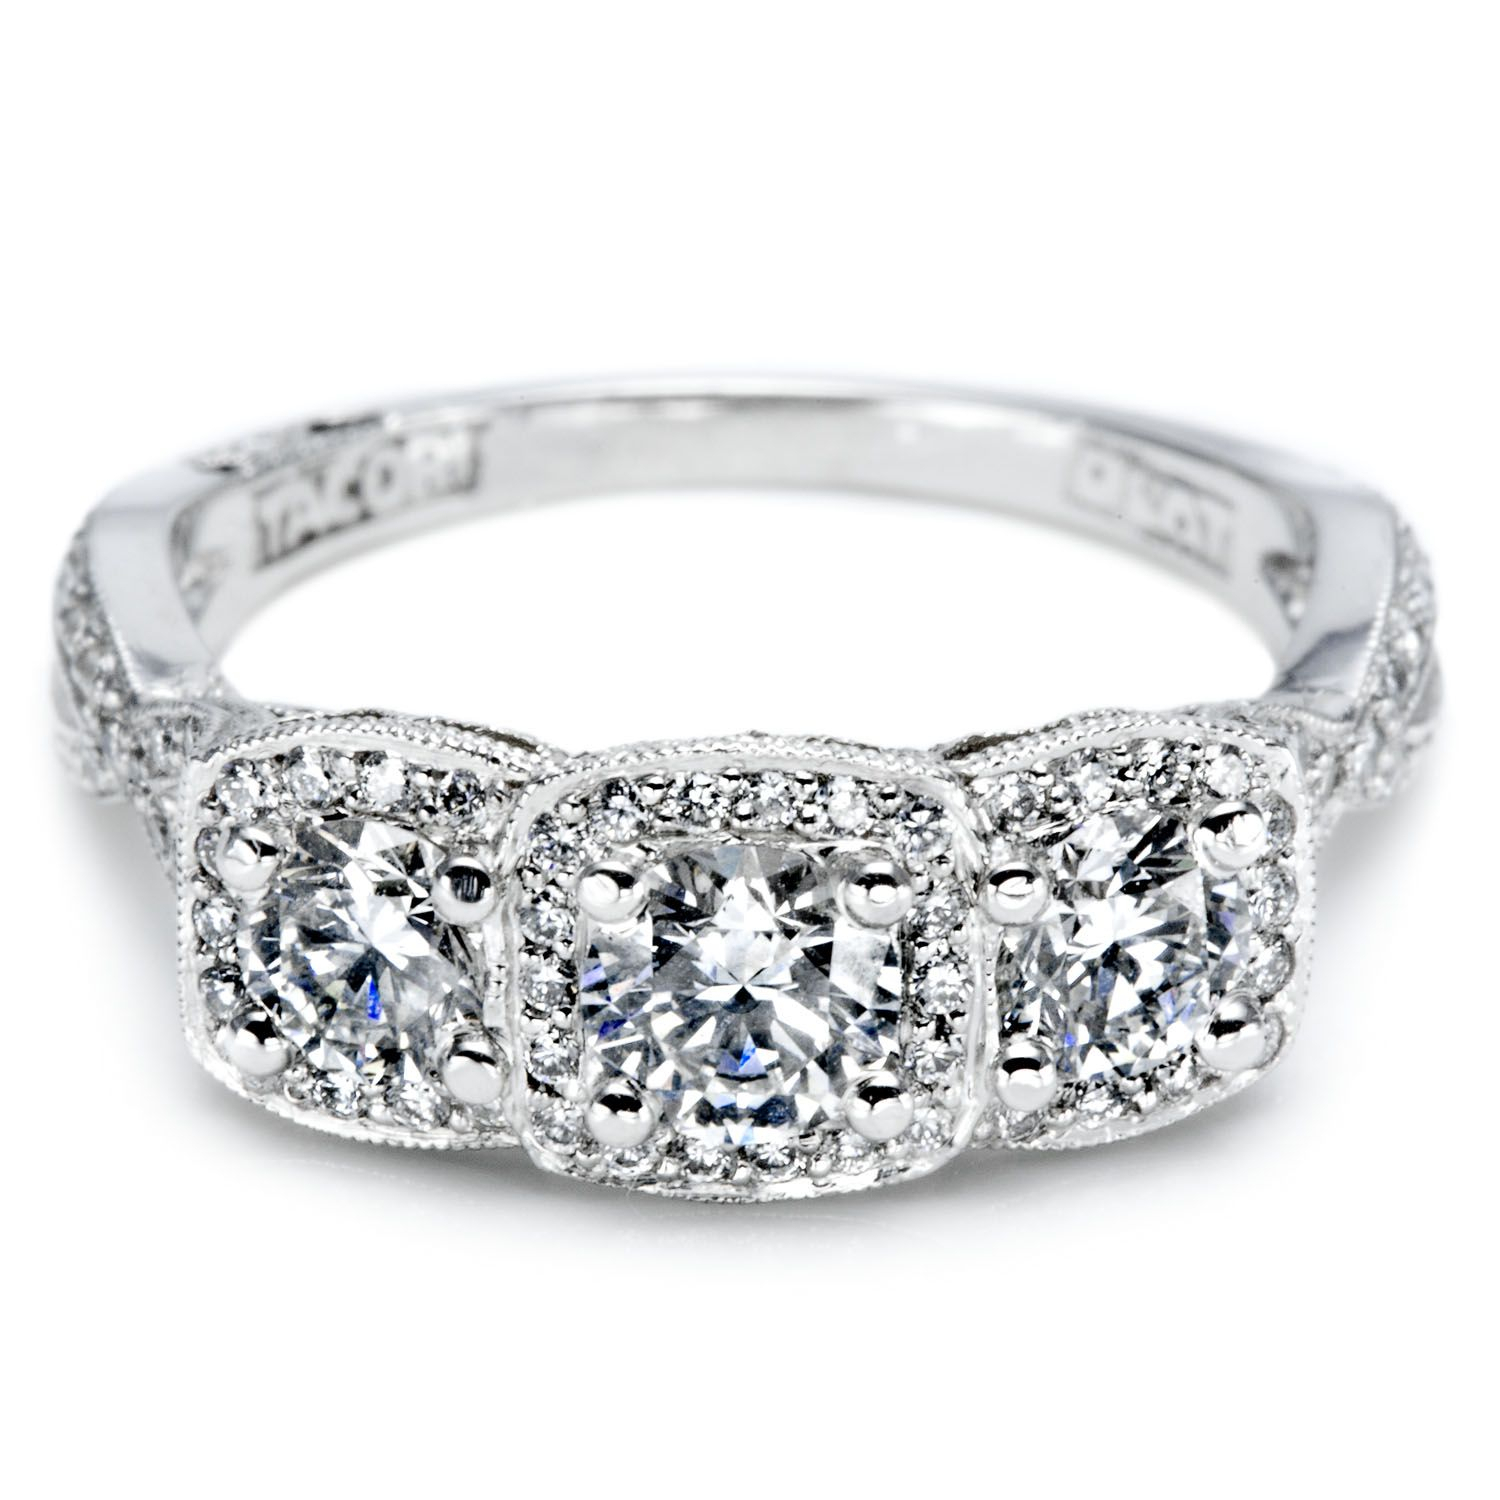 Unique Diamond Anniversary Rings | View Some Examples Of With Best And Newest Diamond Five Stone Anniversary Bands In Gold (View 25 of 25)